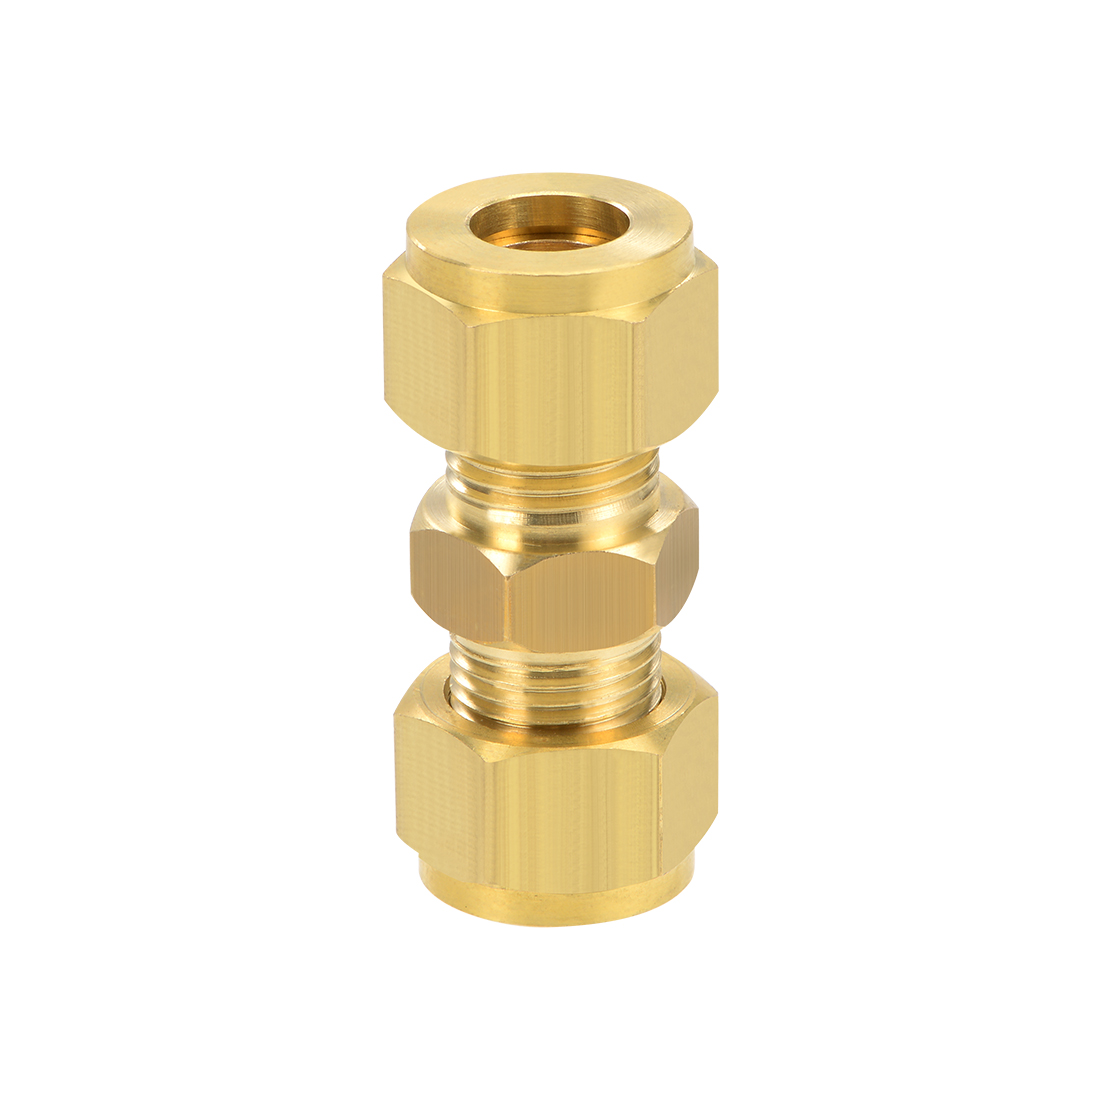 Brass Compression Tube Fitting 9.8mm OD Straight Pipe Adapter for Irrigation